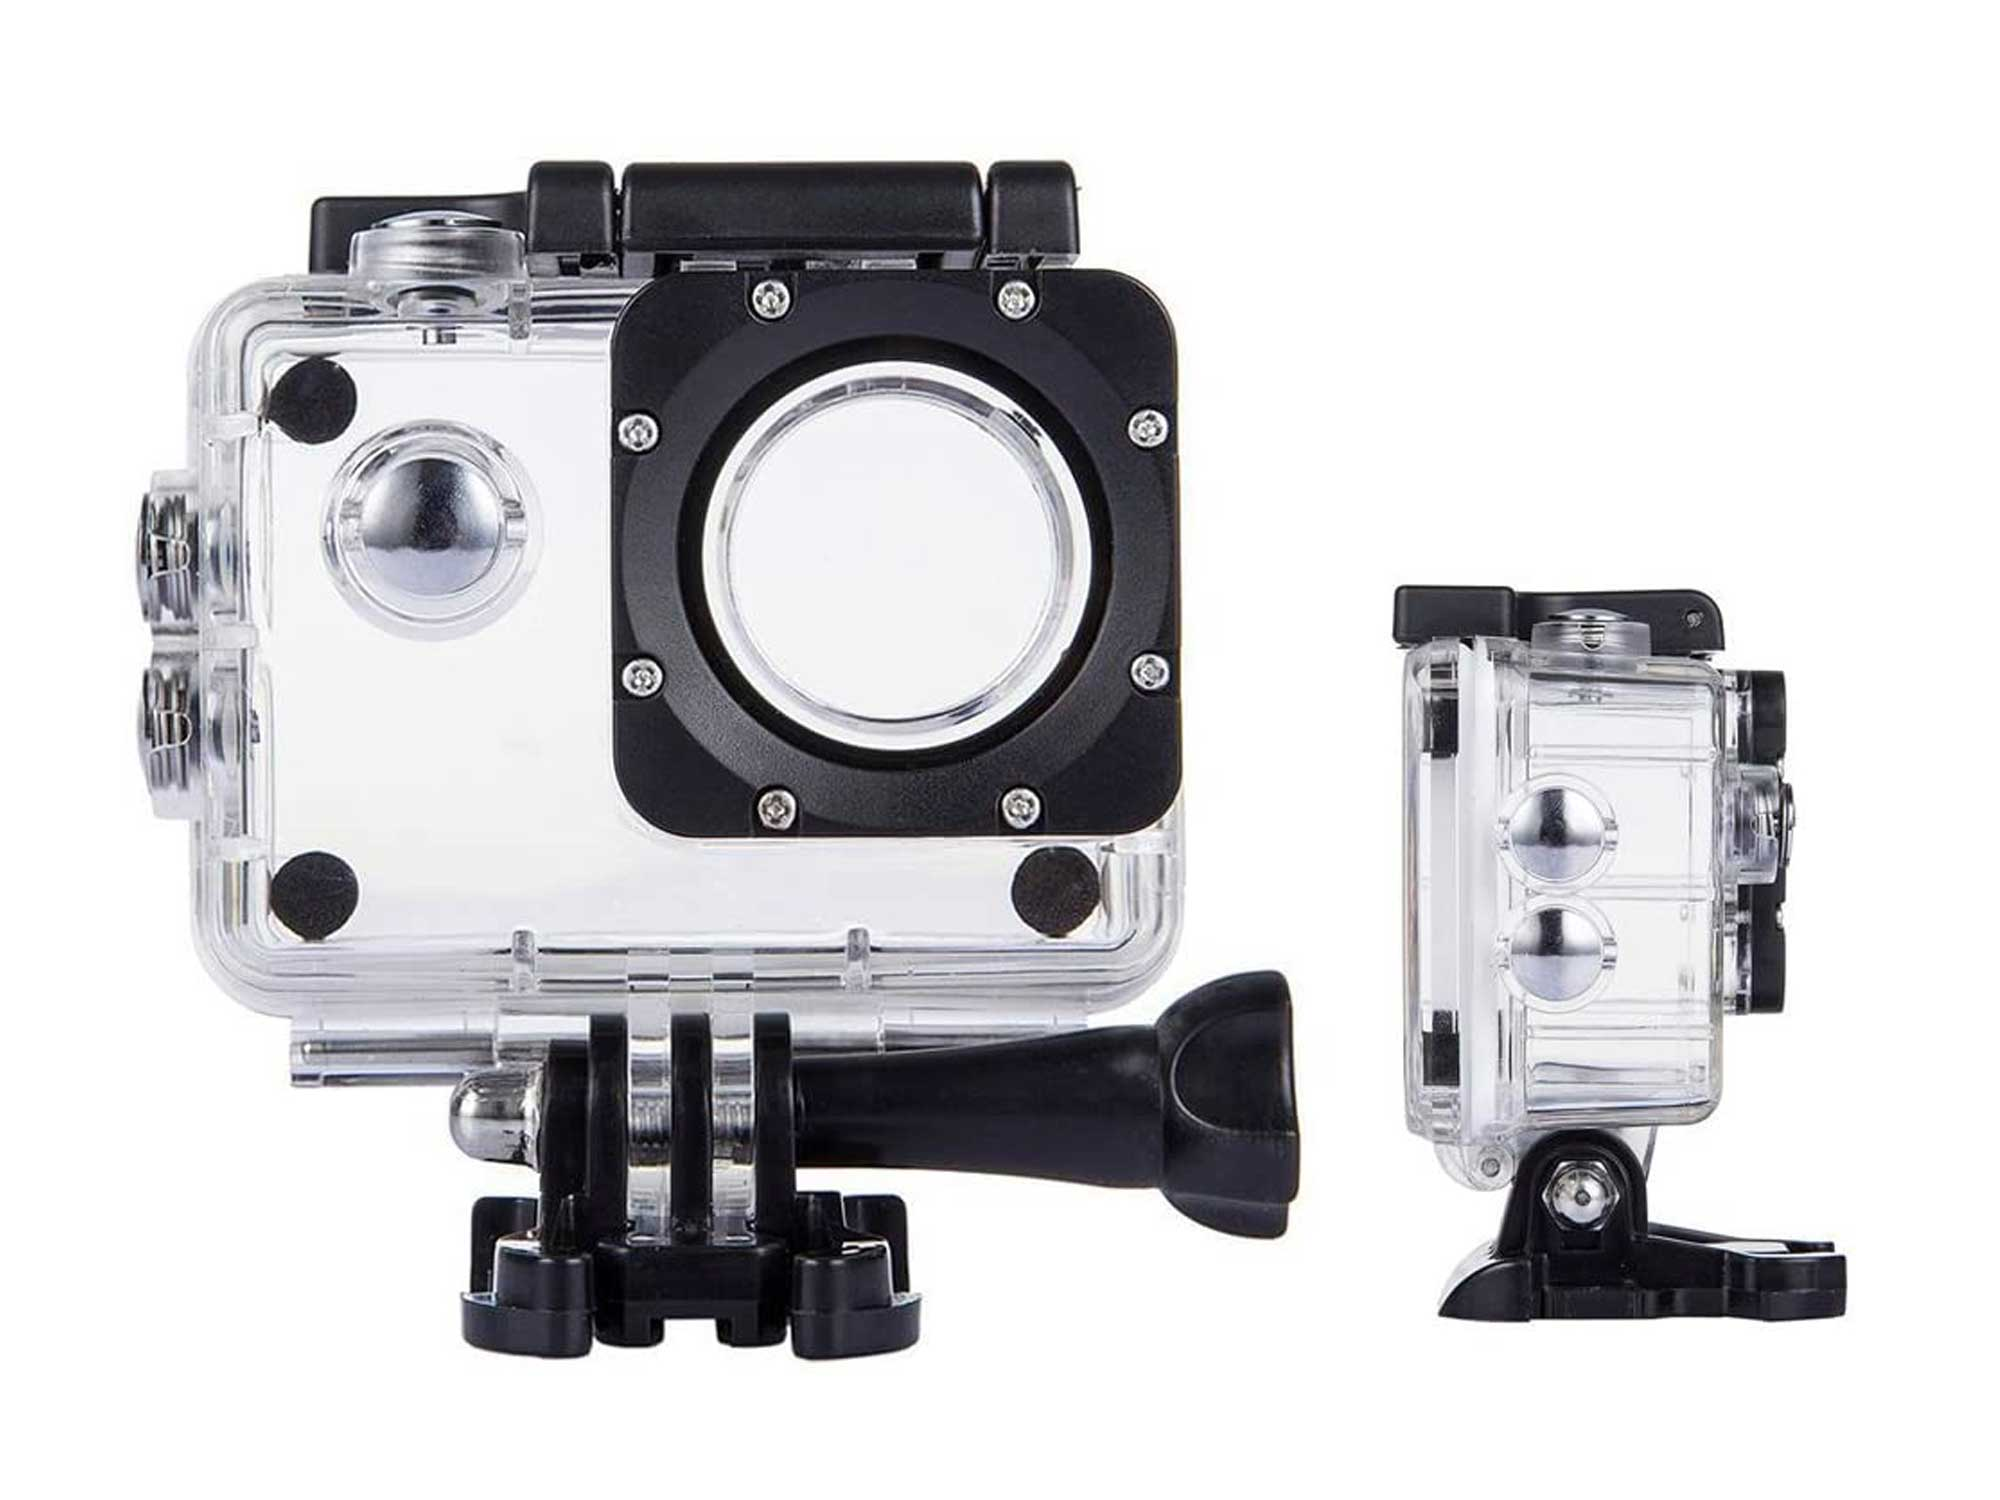 TEKCAM Action Camera Waterproof Case Underwater Protective Housing Case Compatible with AKASO EK5000/ DBPOWER EX5000/ WiMiUS Q1Q2/ EKEN H9R/ Campark X15 V30 Sports Camera